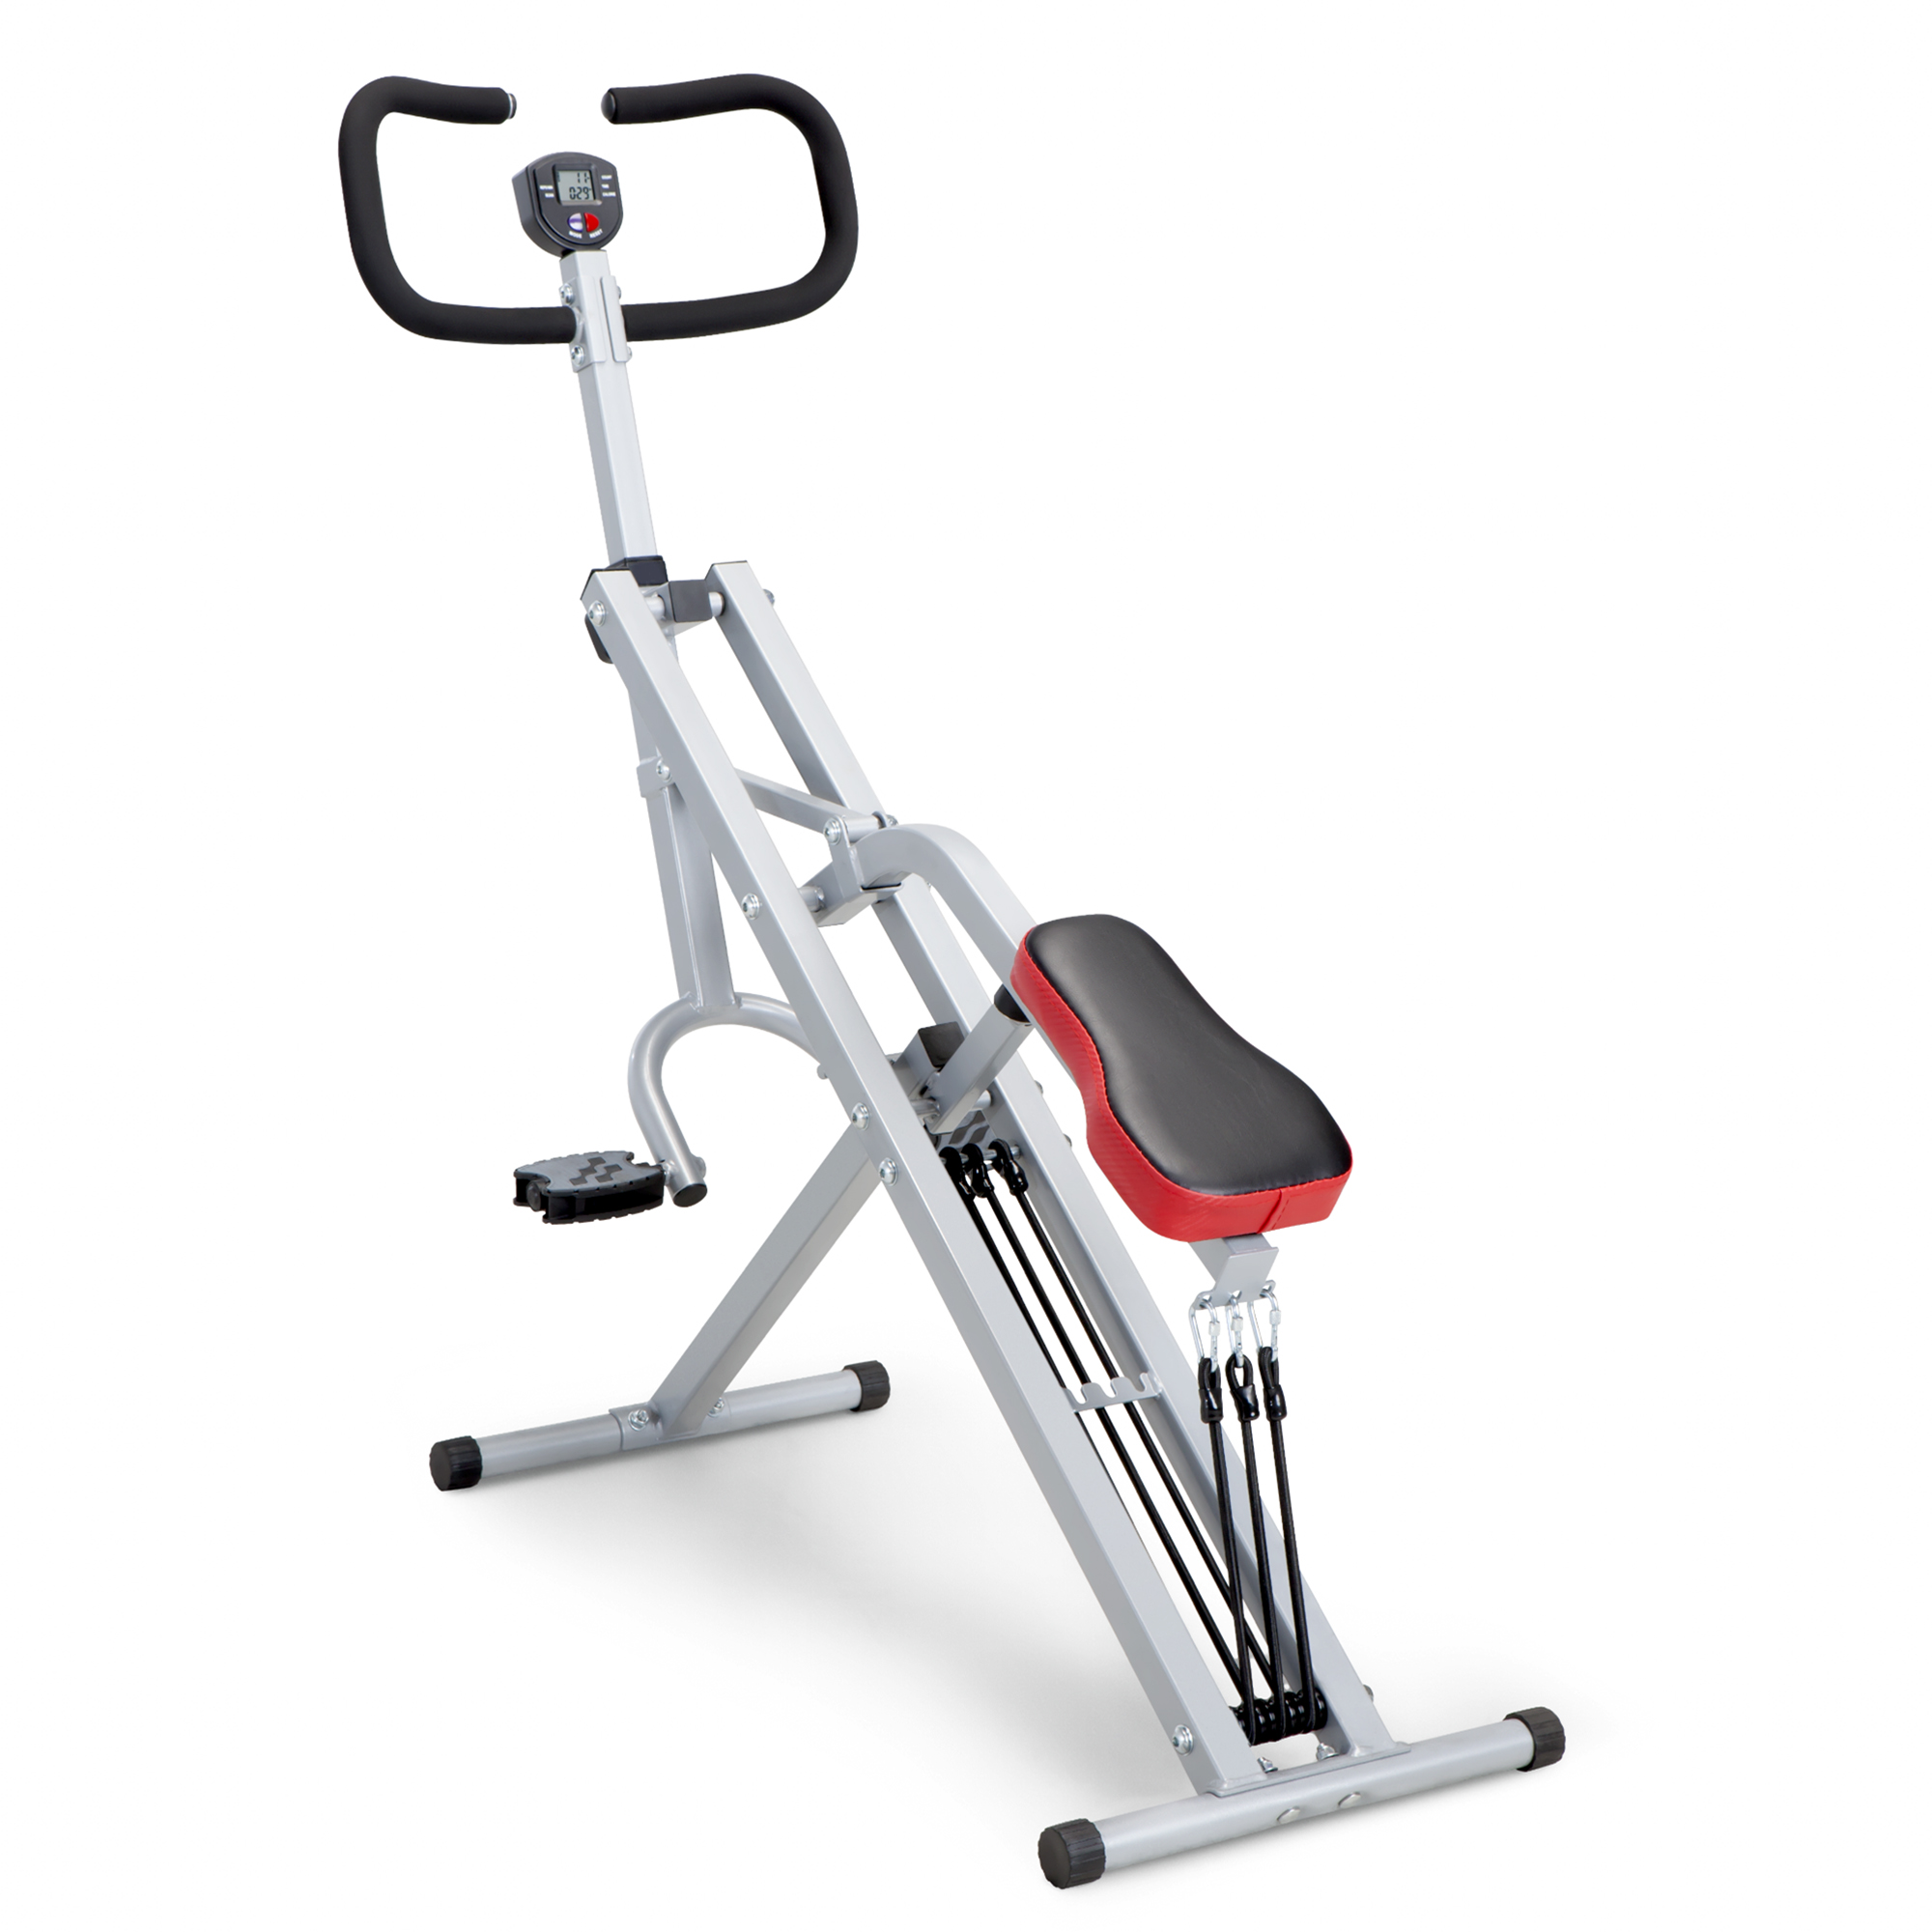 Marcy XJ-6334 Squat Machine for Glutes Workout